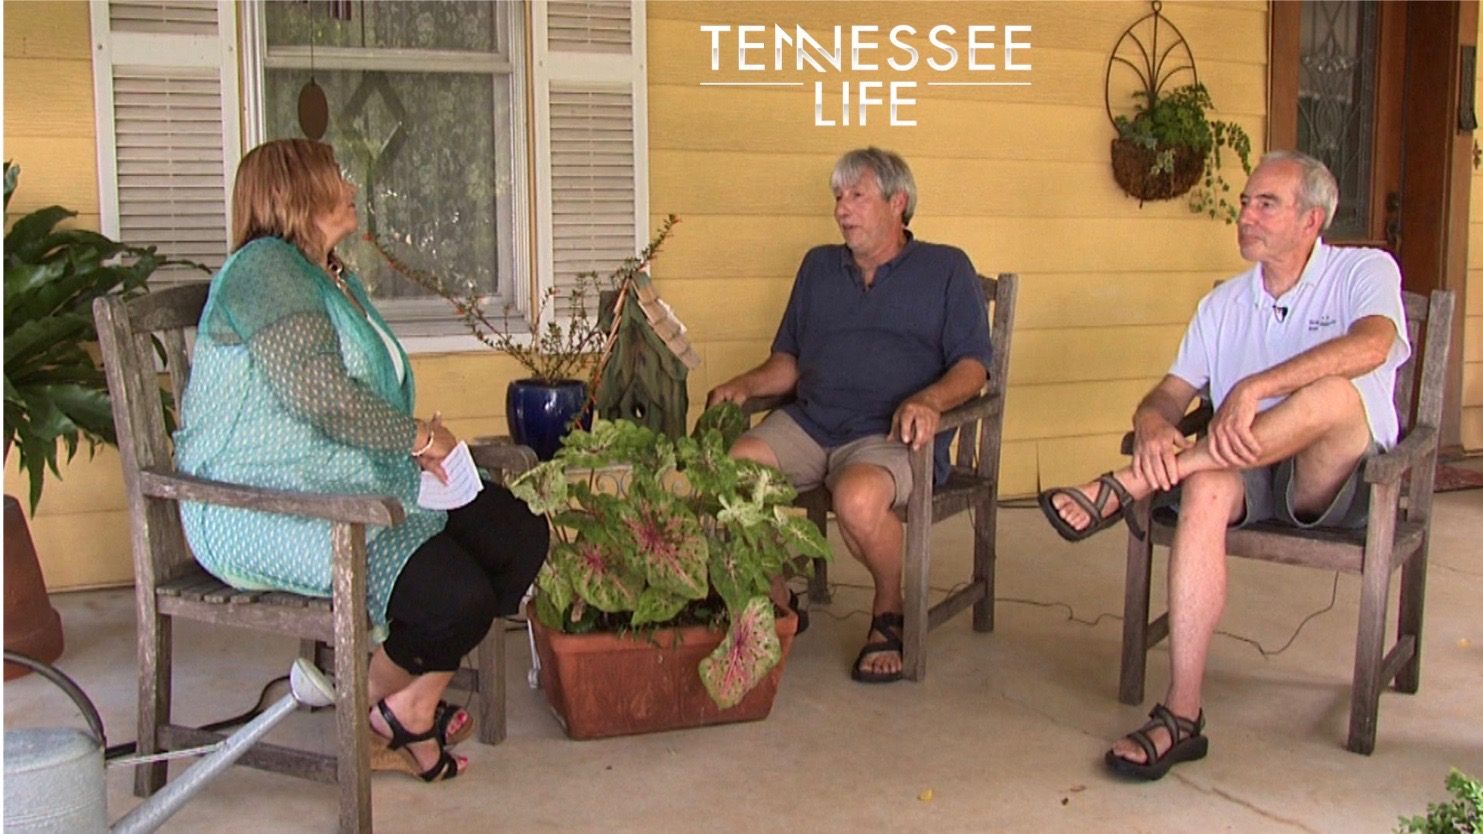 Tennessee Life - Sunday, April 30 at 5 p.m.